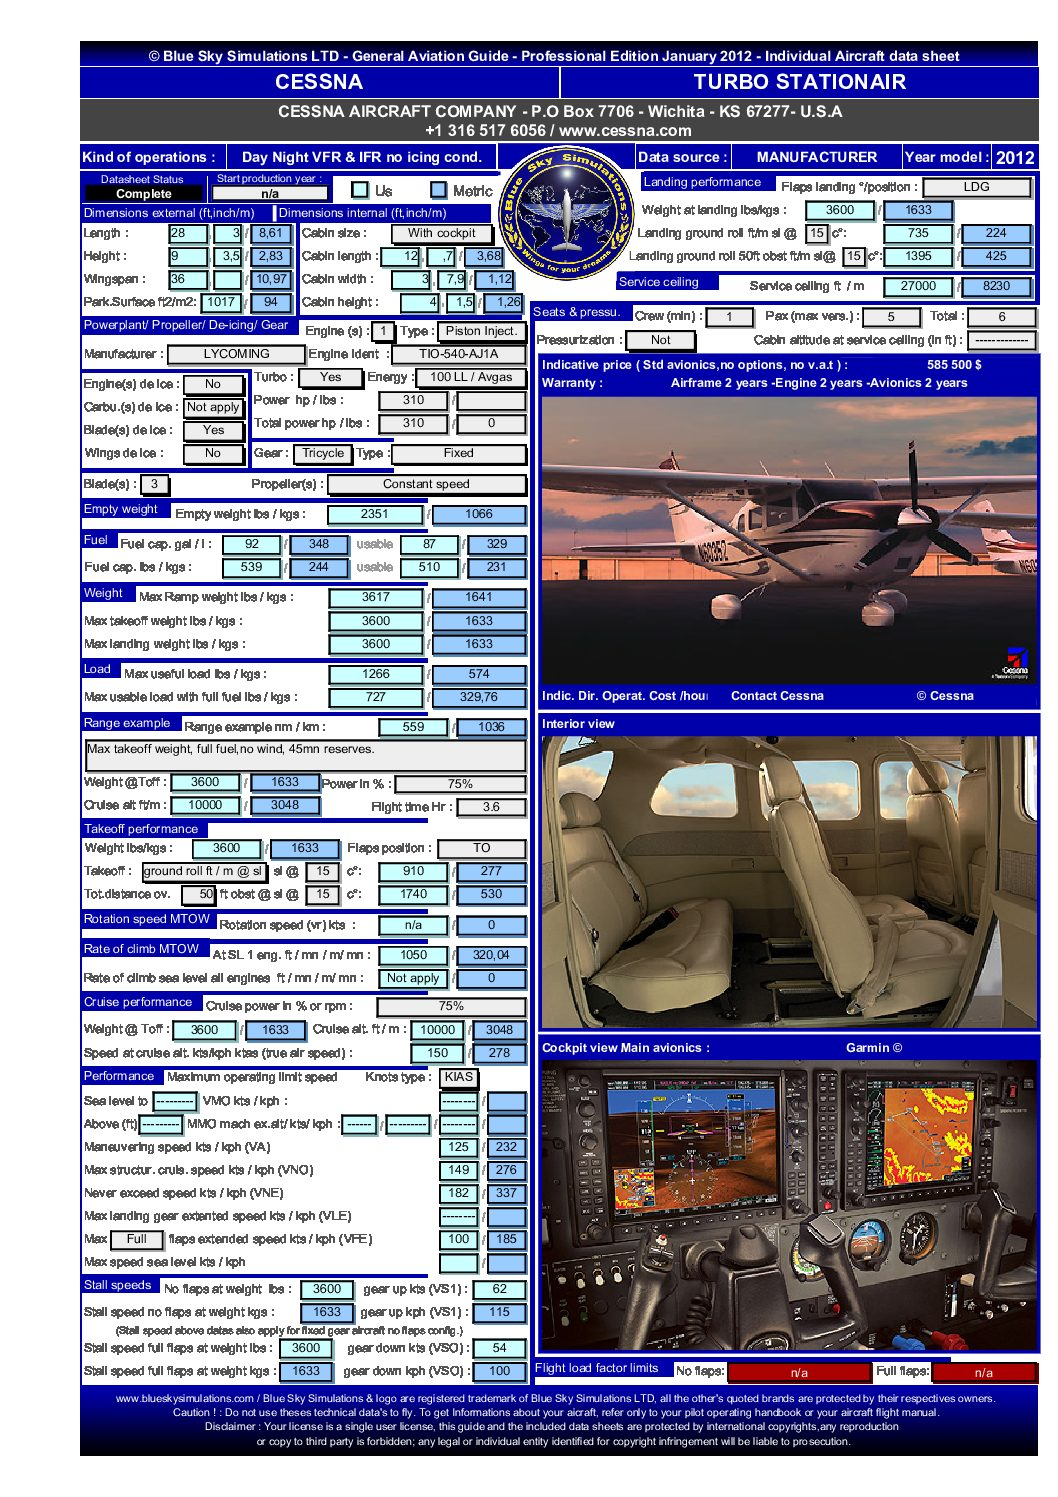 Aviation catalog Cessna turbo Stationair